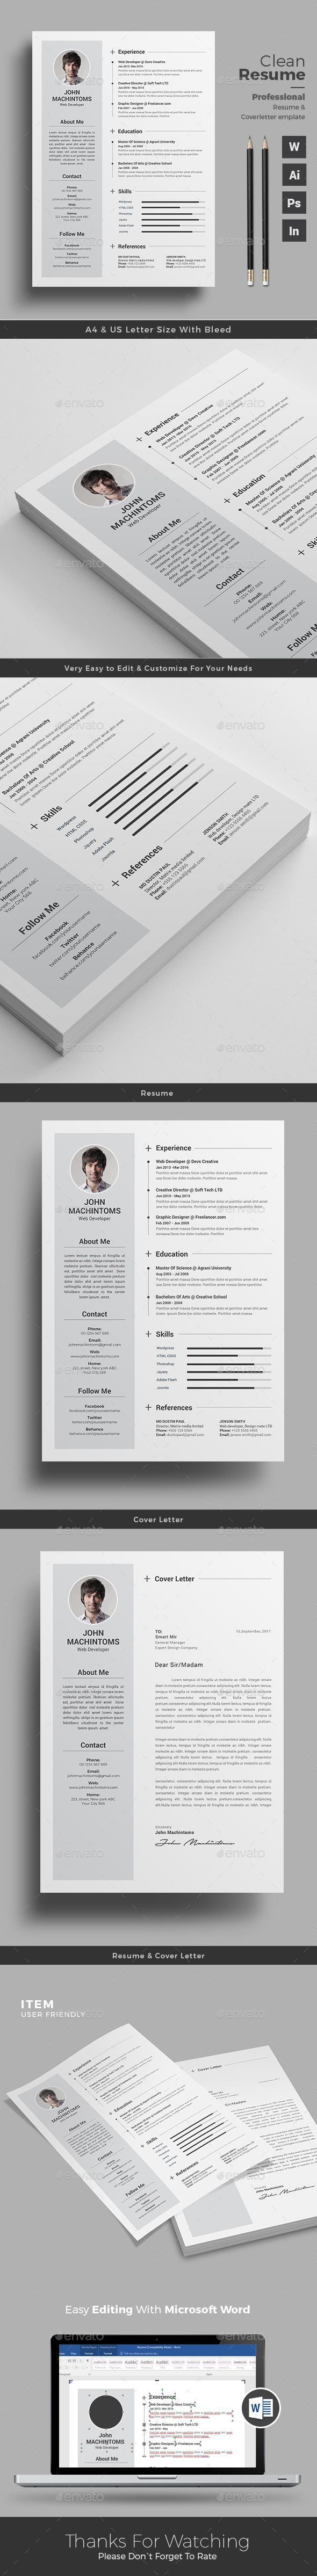 cv template r eacute sum eacute template for word cover letter advice  clean professional resume word template ms word psd ai indd a4